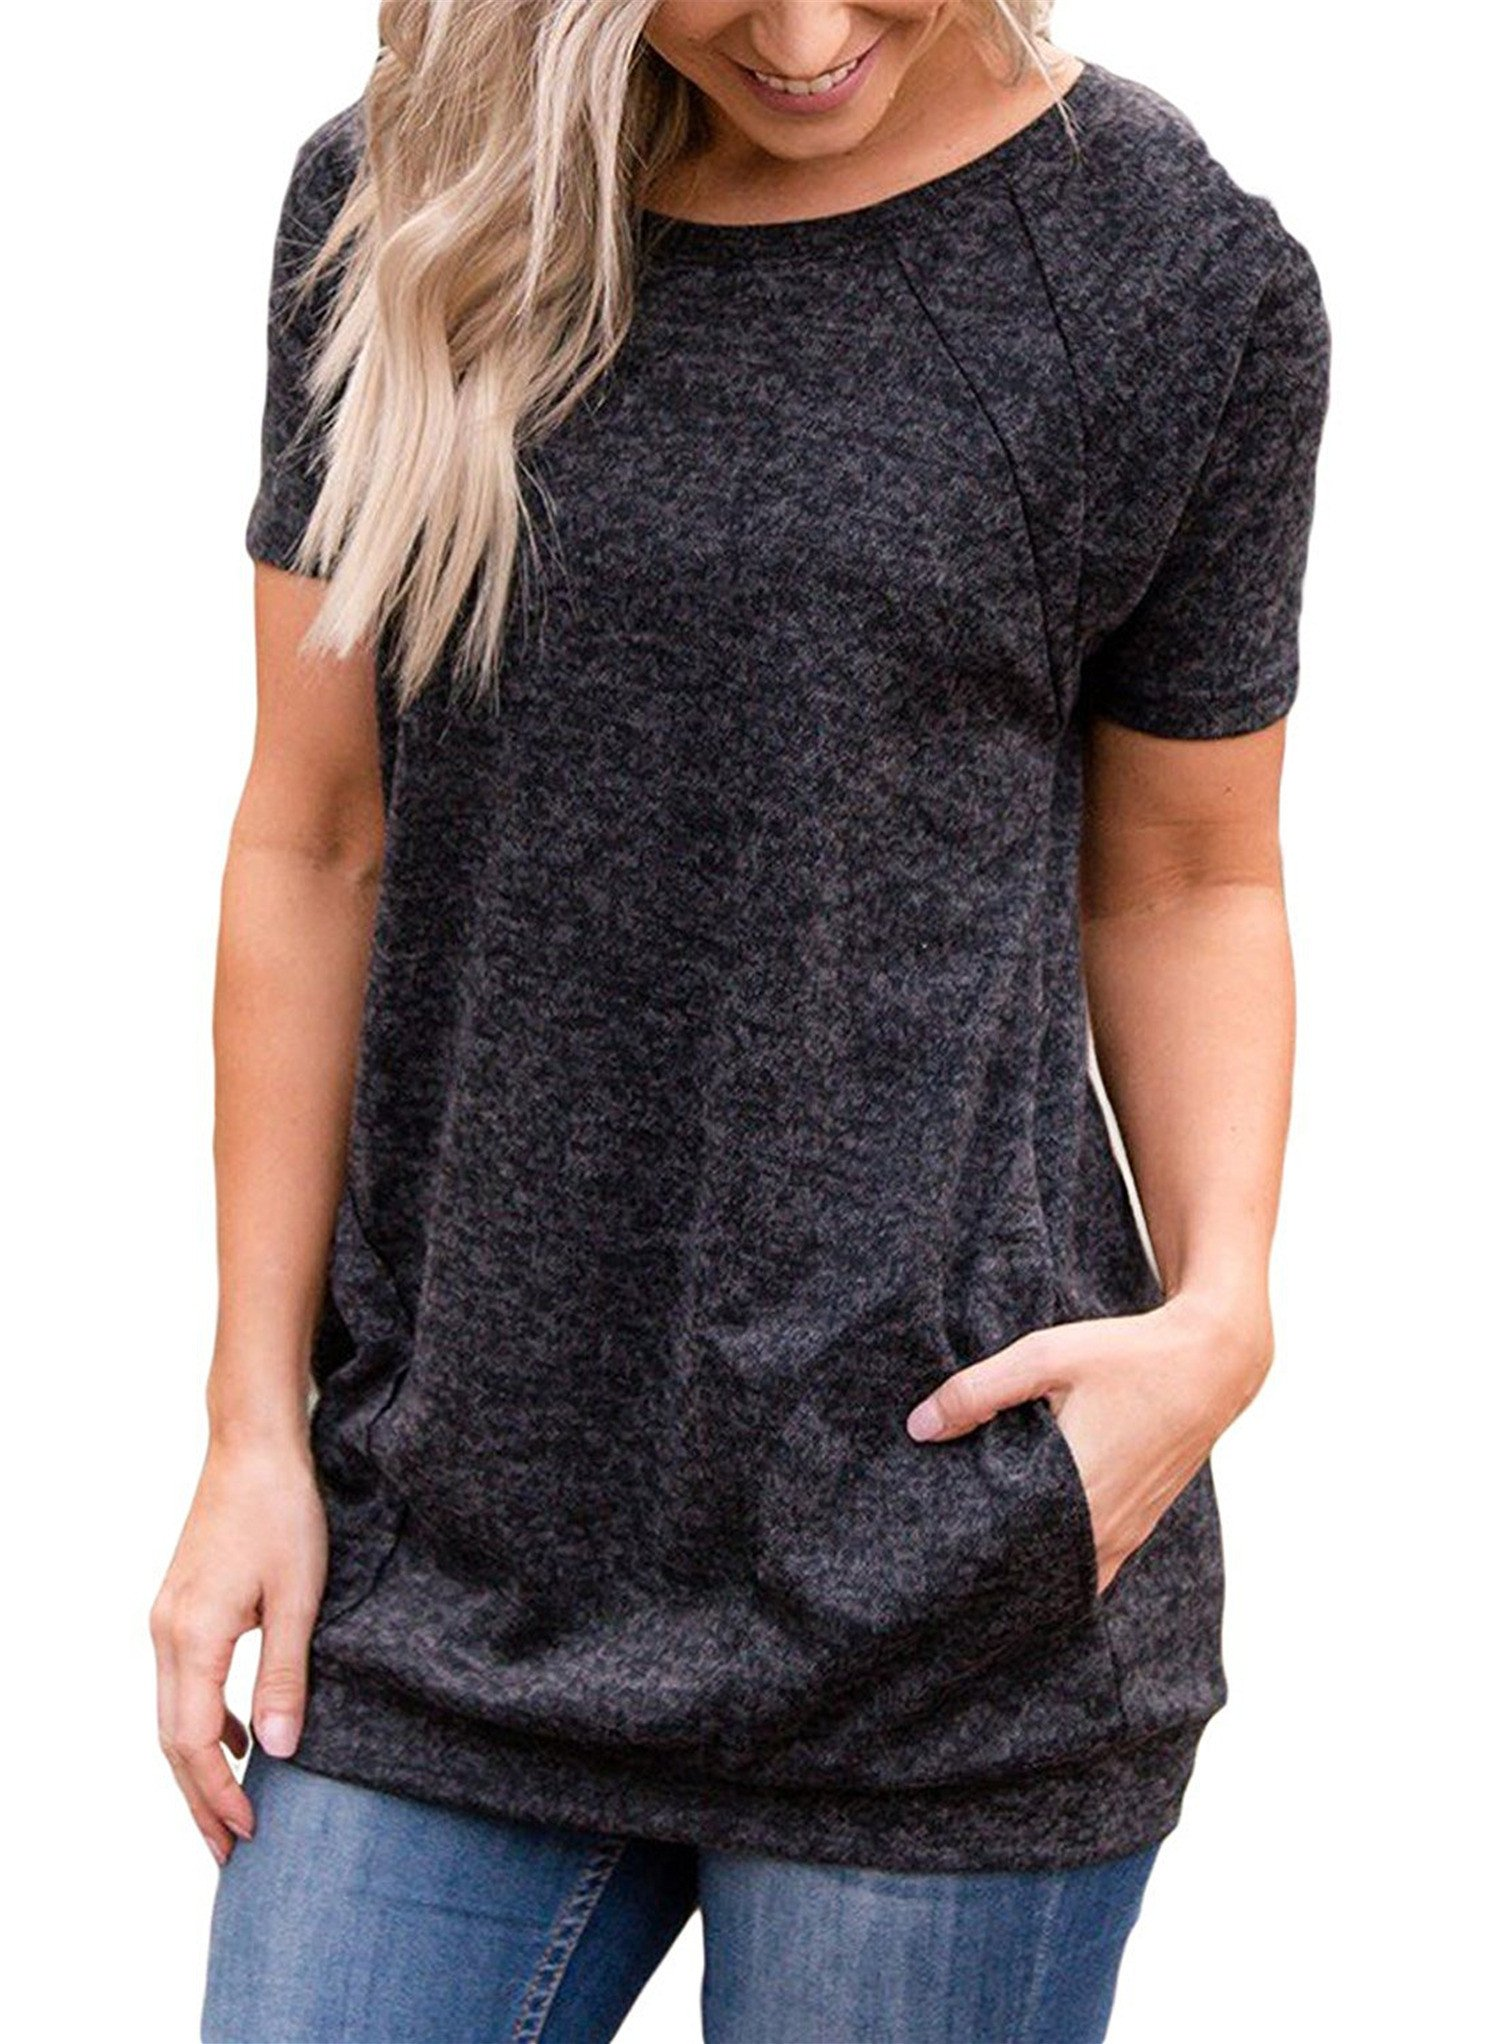 onlypuff Womens Shirts Pockets Solid Crew Neck Tunic Tops Short Sleeve Dark Gray L